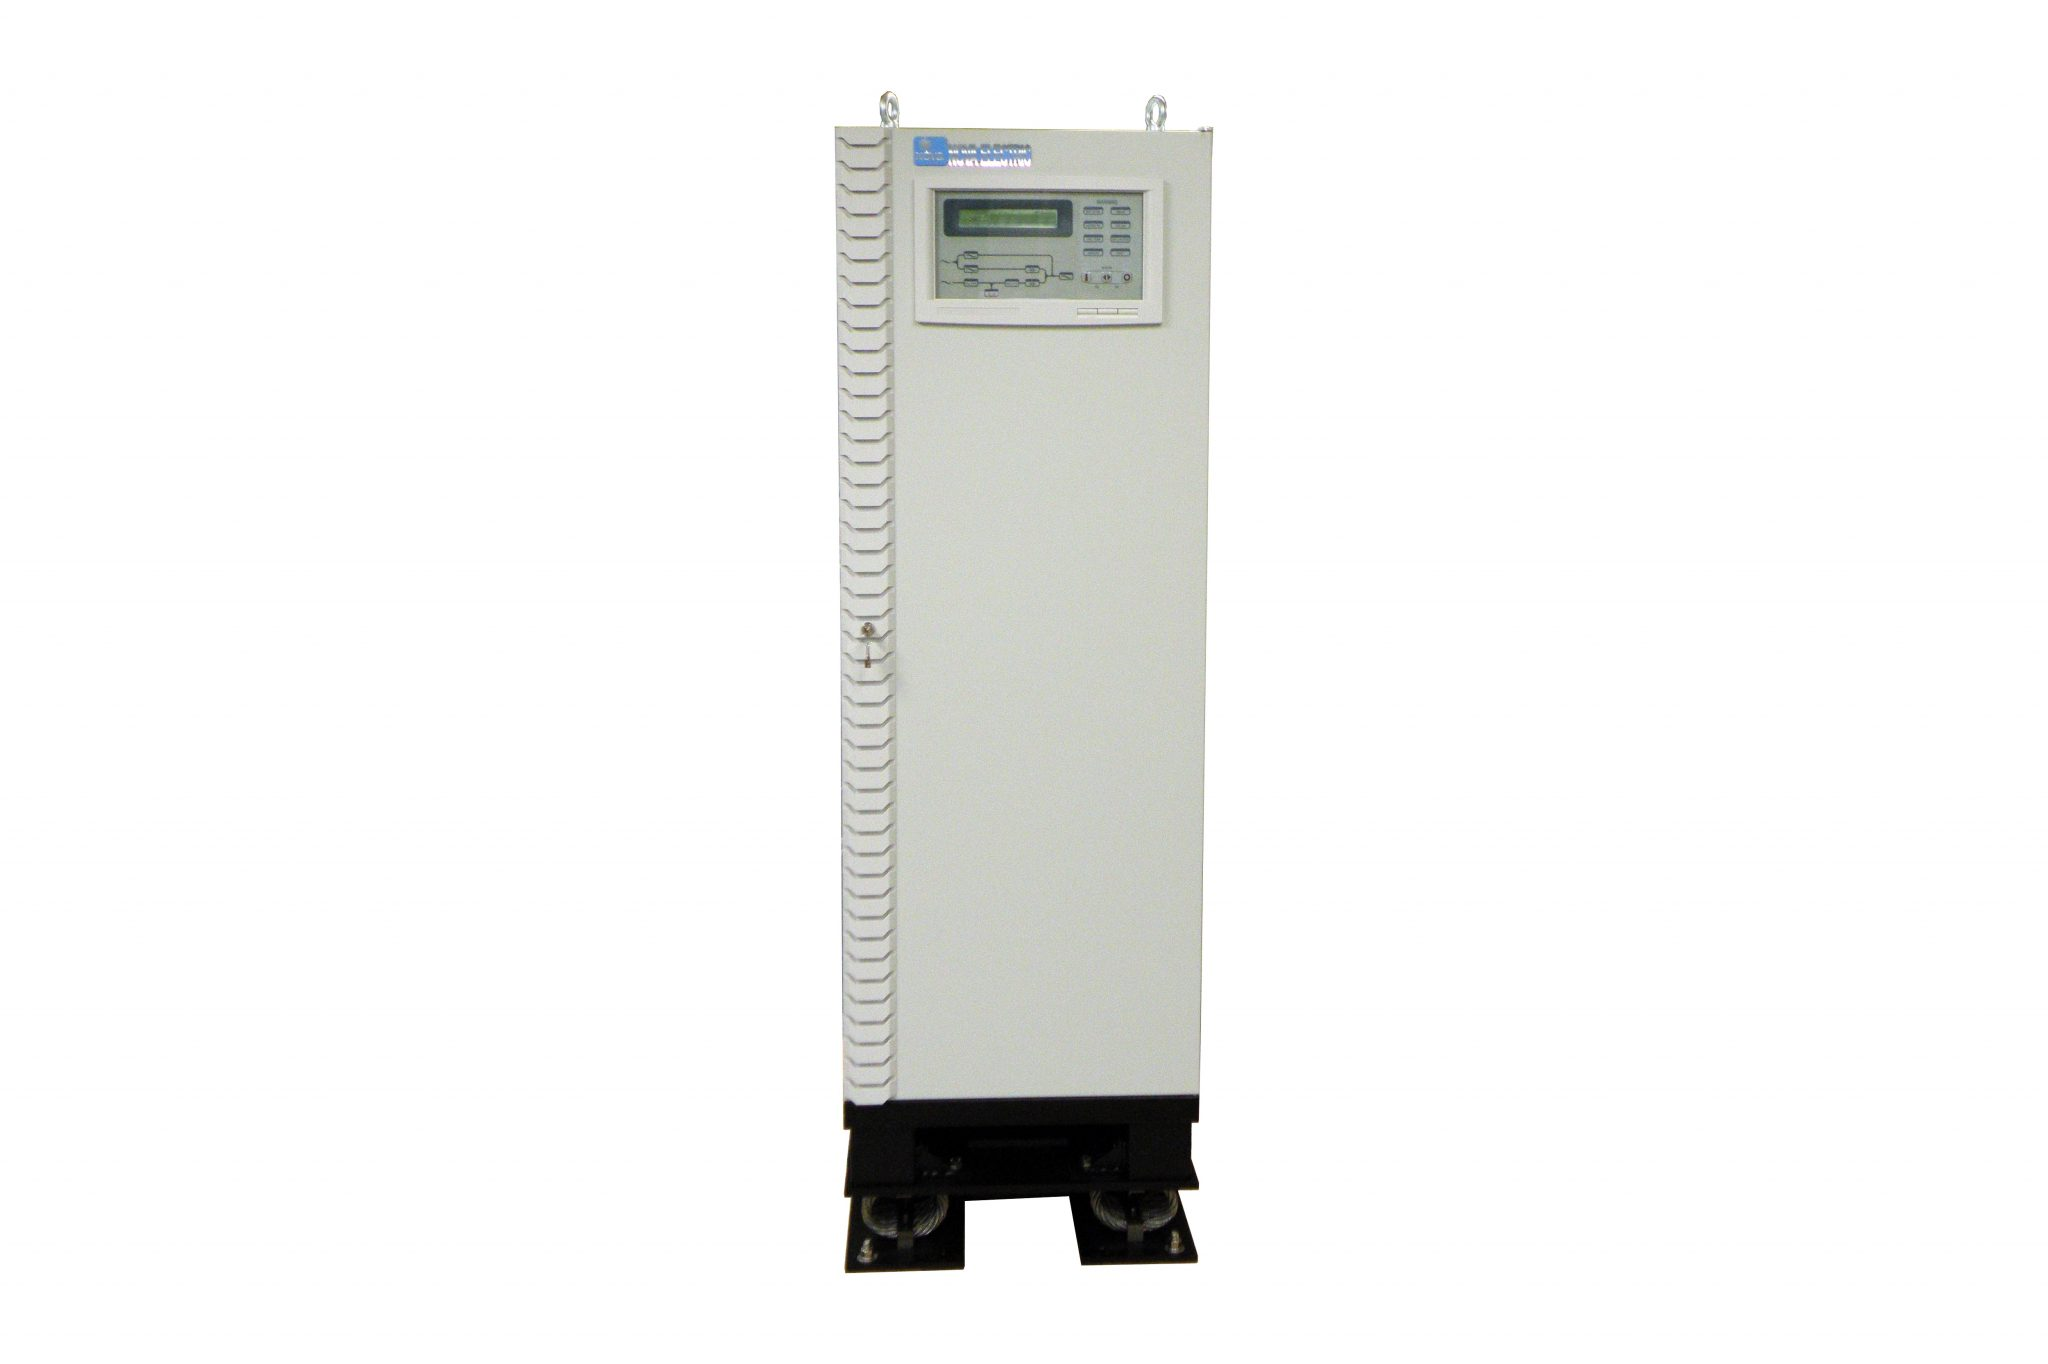 Jupiter Series 10 450 Kva High Power Solid State Frequency